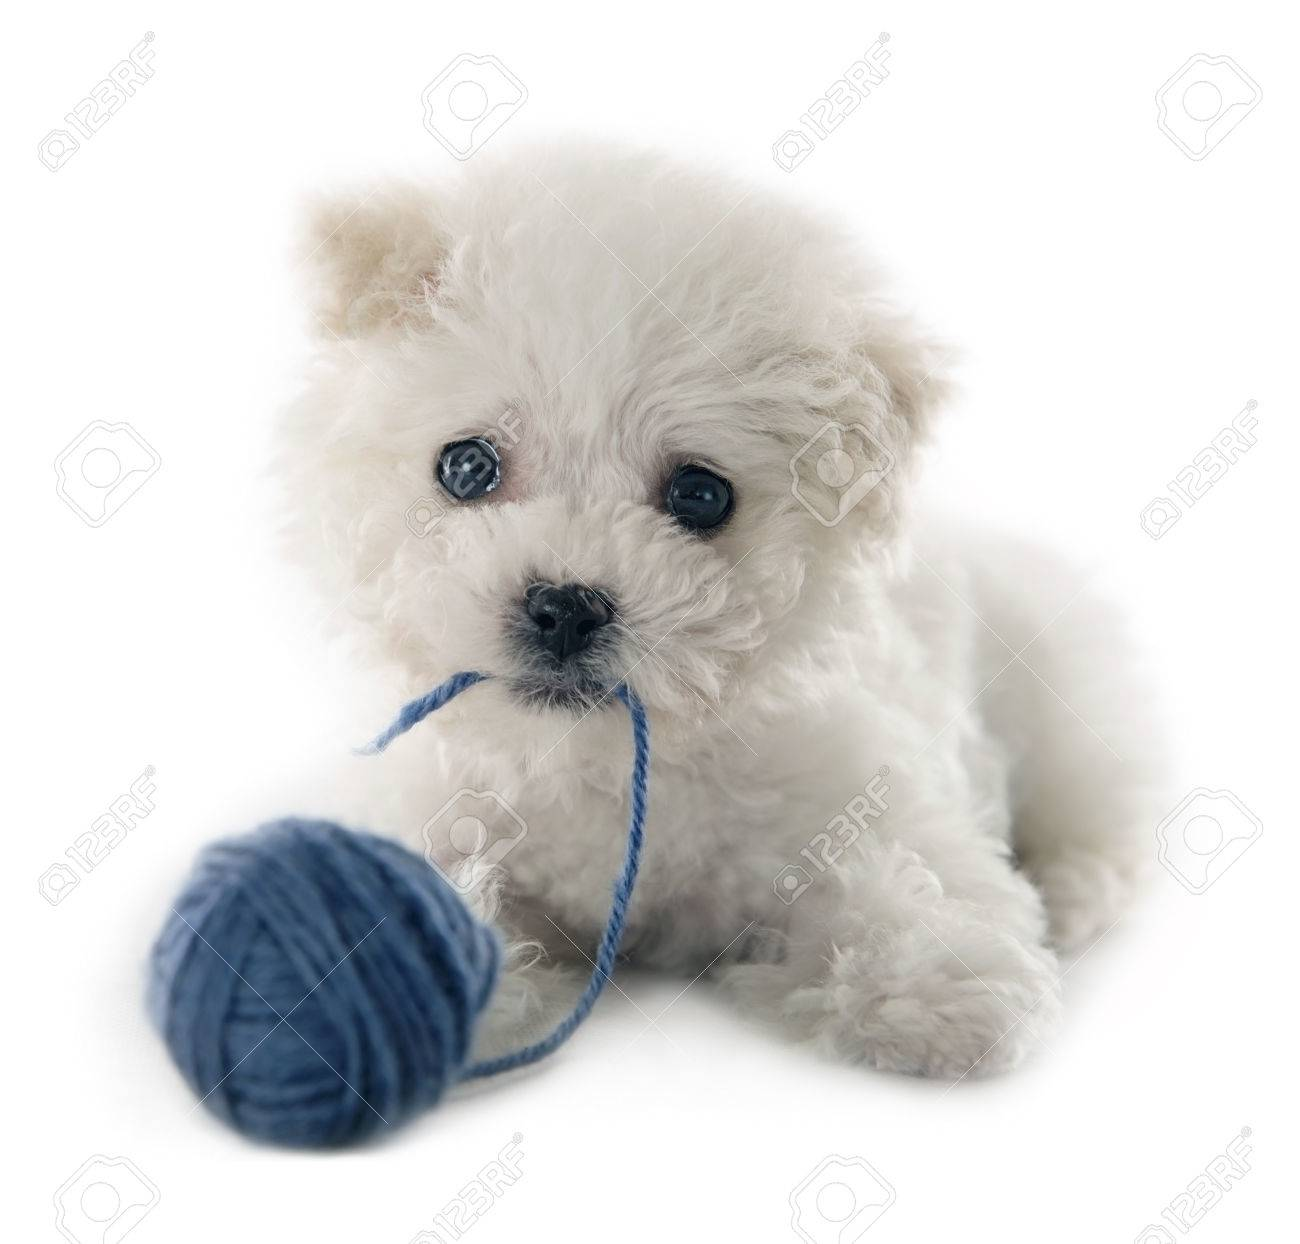 Cute small Bichon Frise puppy at 9 weeks old on white isolated